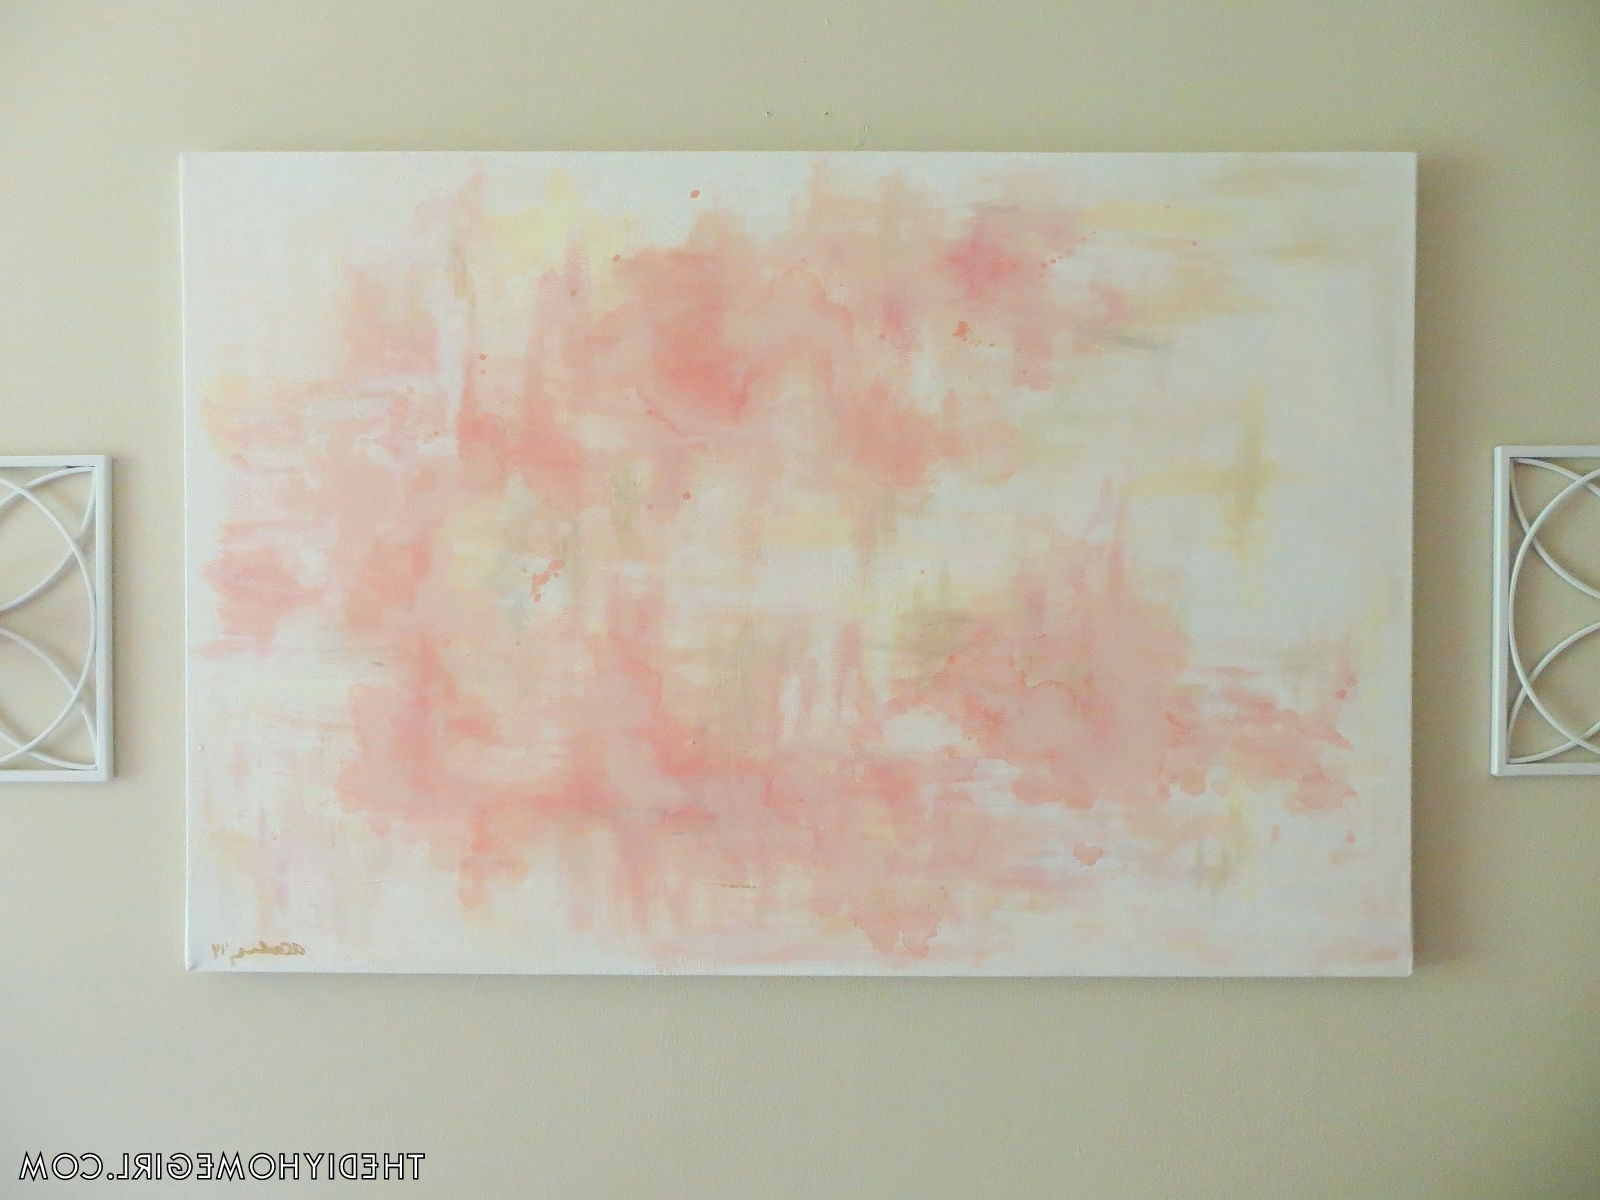 Diy Abstract Wall Art Salmon Shrimp Toast Pink Rose Gold Silver Throughout Best And Newest Pink Abstract Wall Art (Gallery 9 of 15)